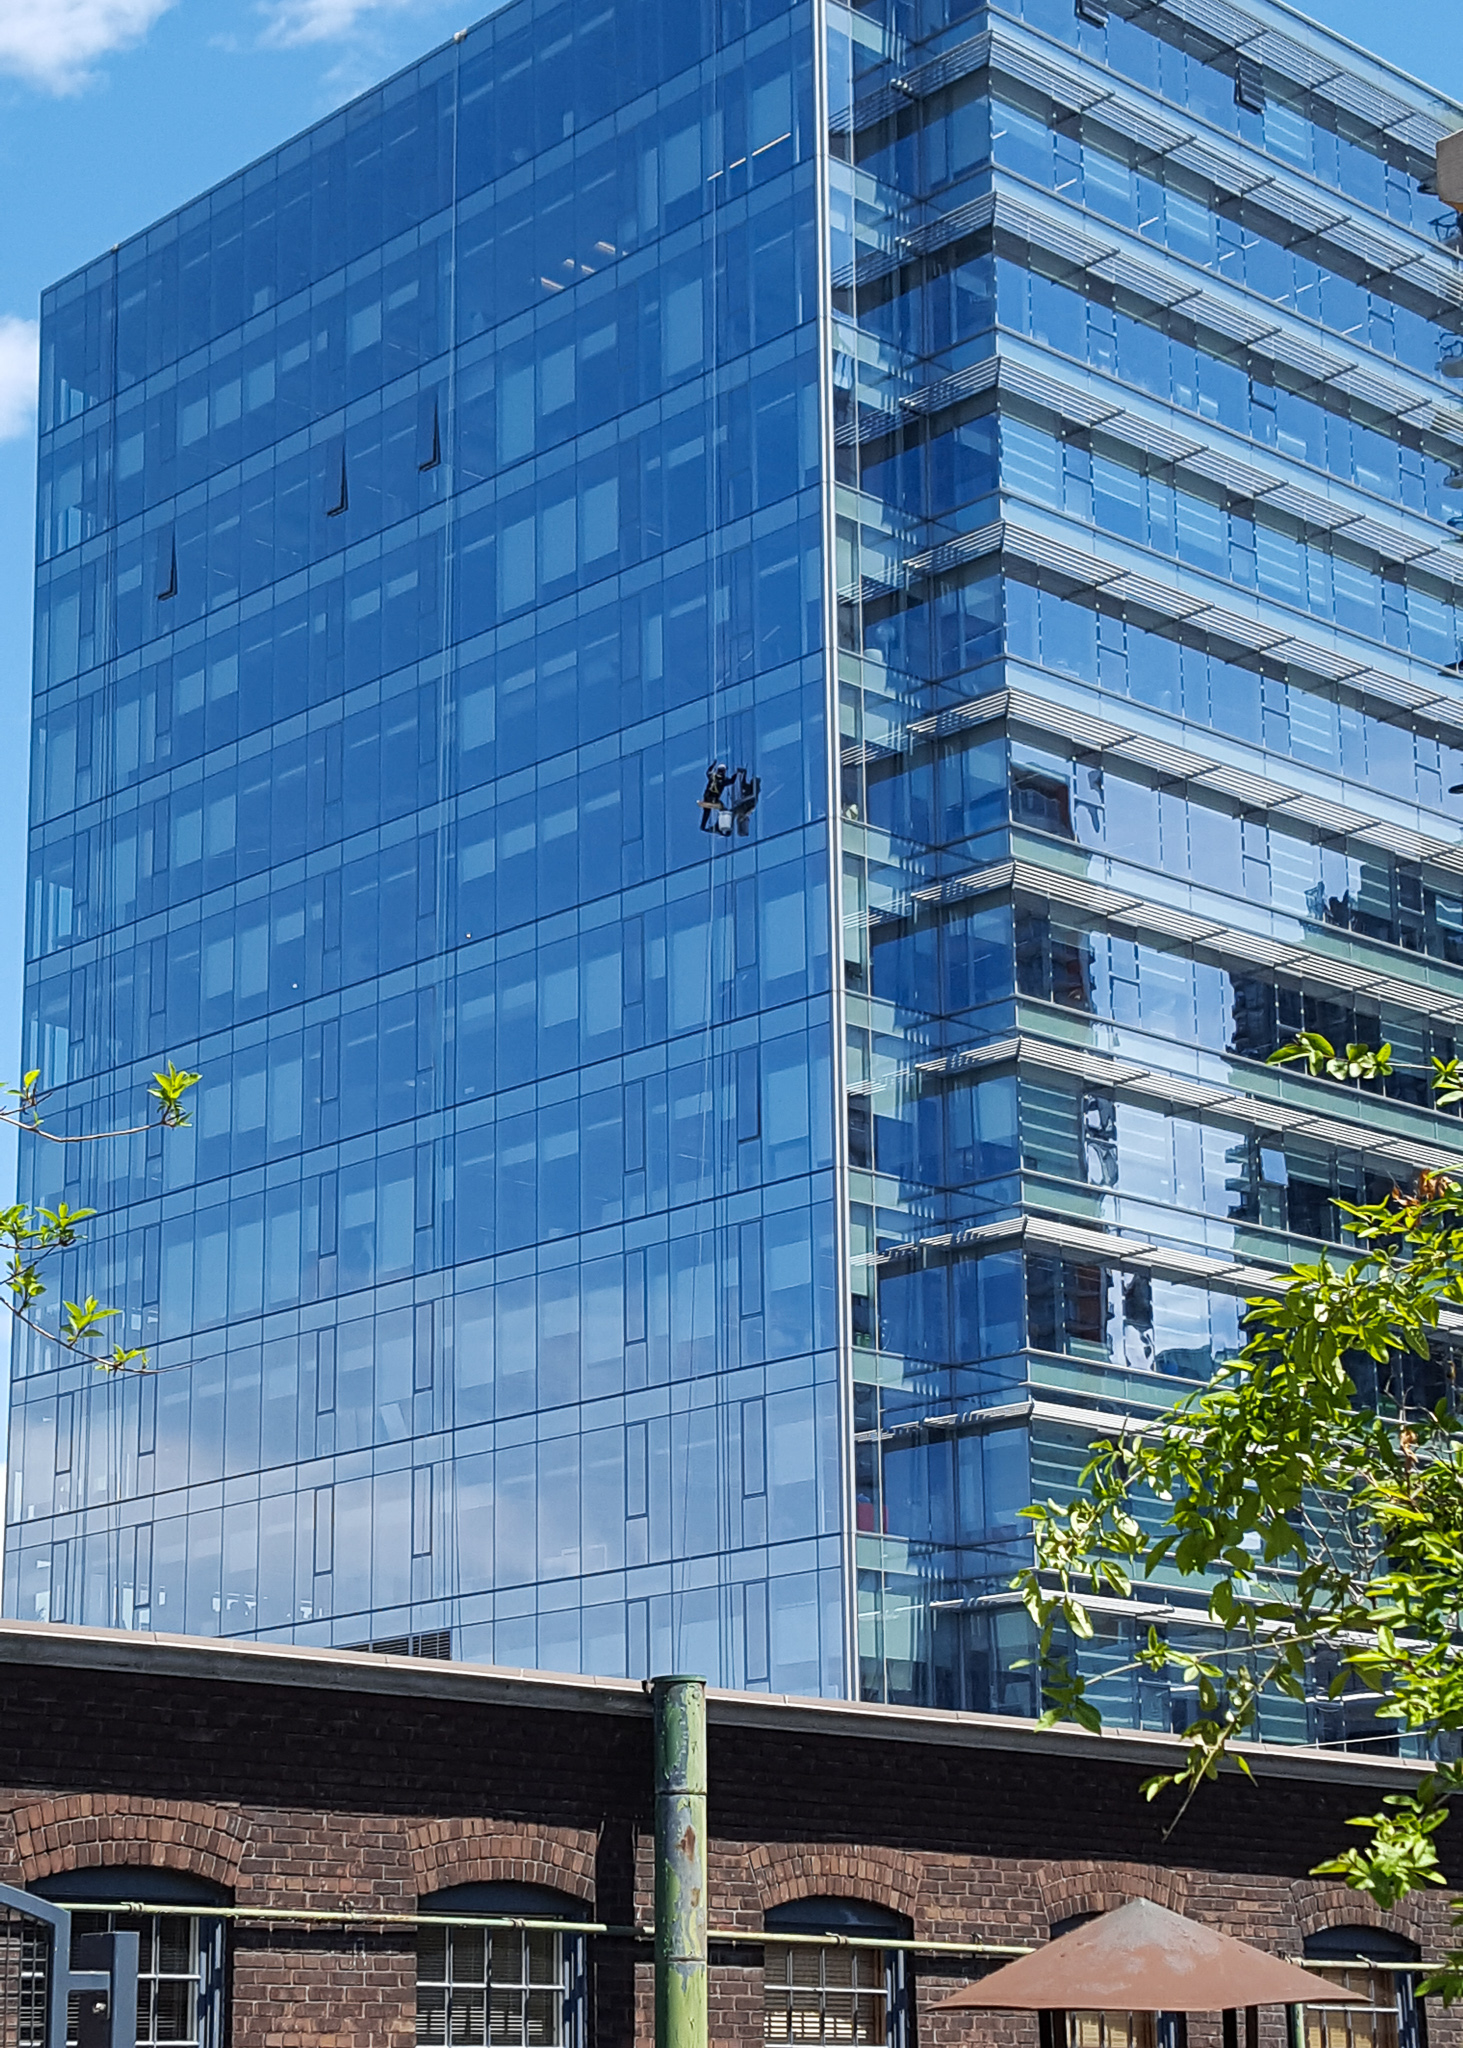 window cleaner scaling large building